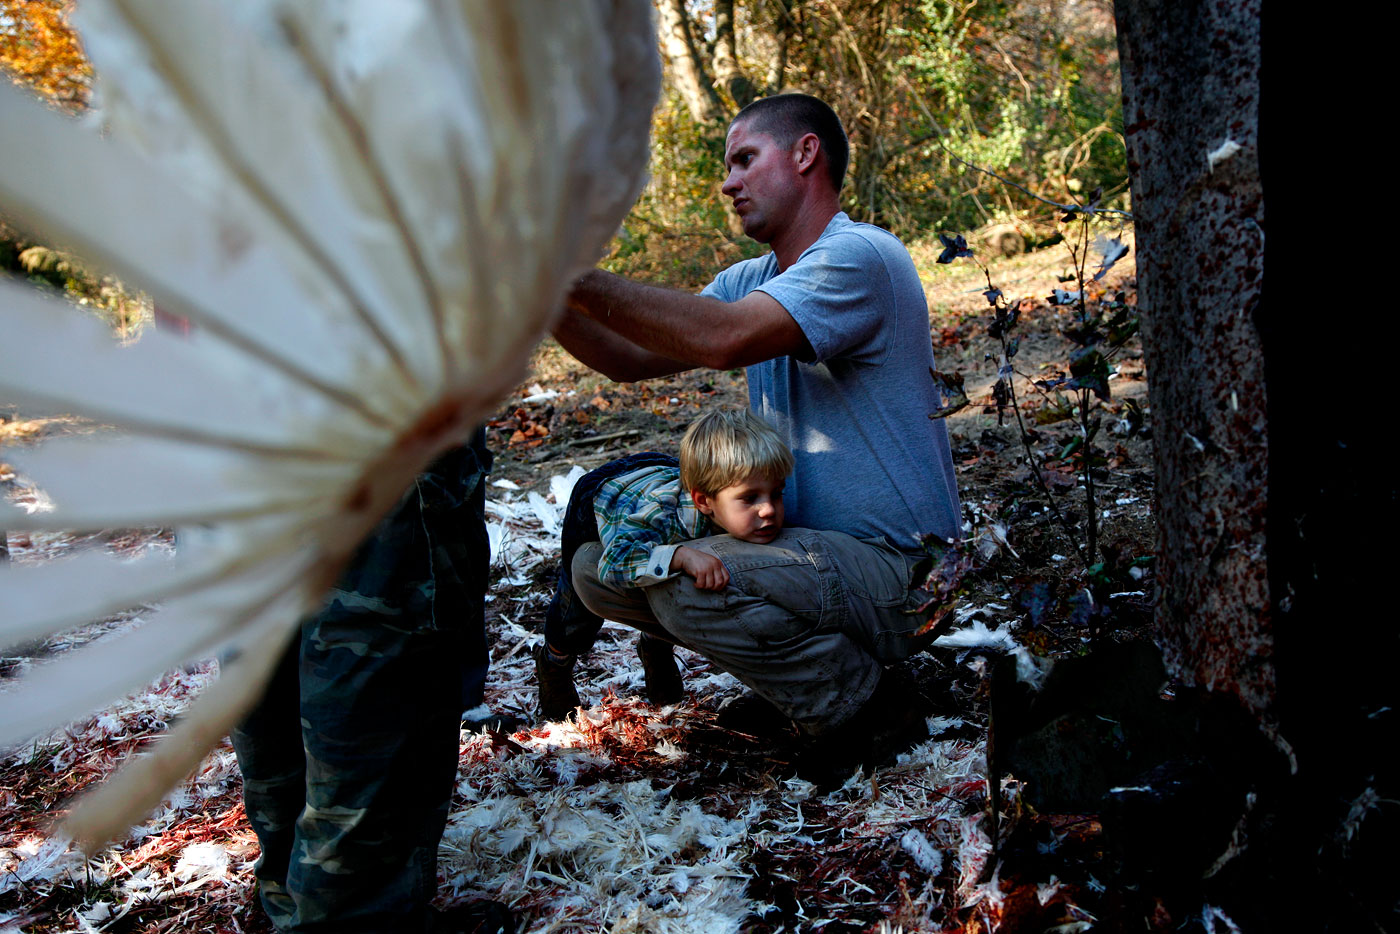 Jim Salmons, a neighboring farmer, helps clean turkeys while his son, Howard, 3, sits with him. {quote}I think it's good for him to come up and learn,{quote} Salmons said.